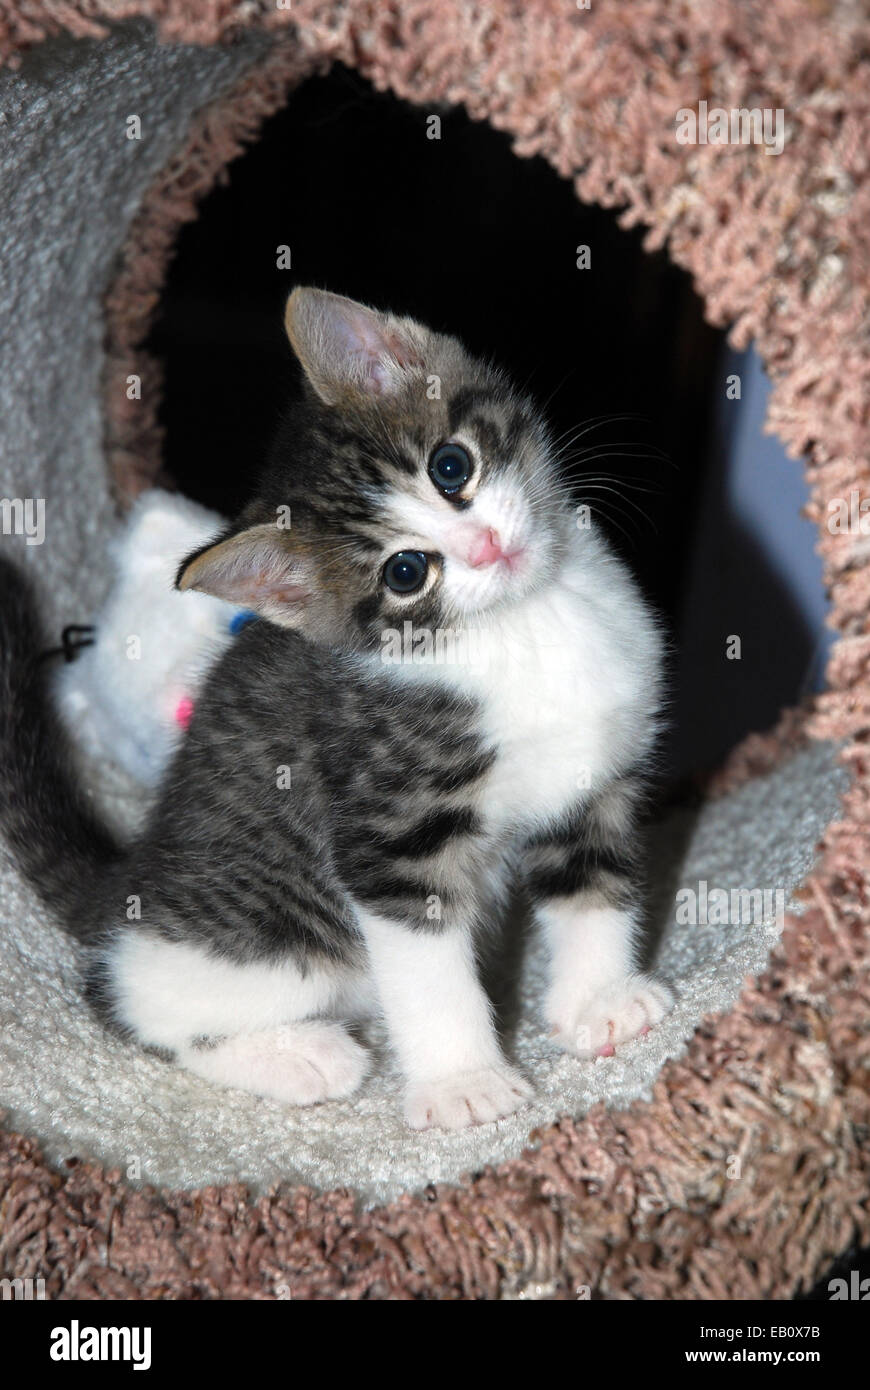 Cute tabby and white kitten sitting a cat tower with head tilted - Stock Image